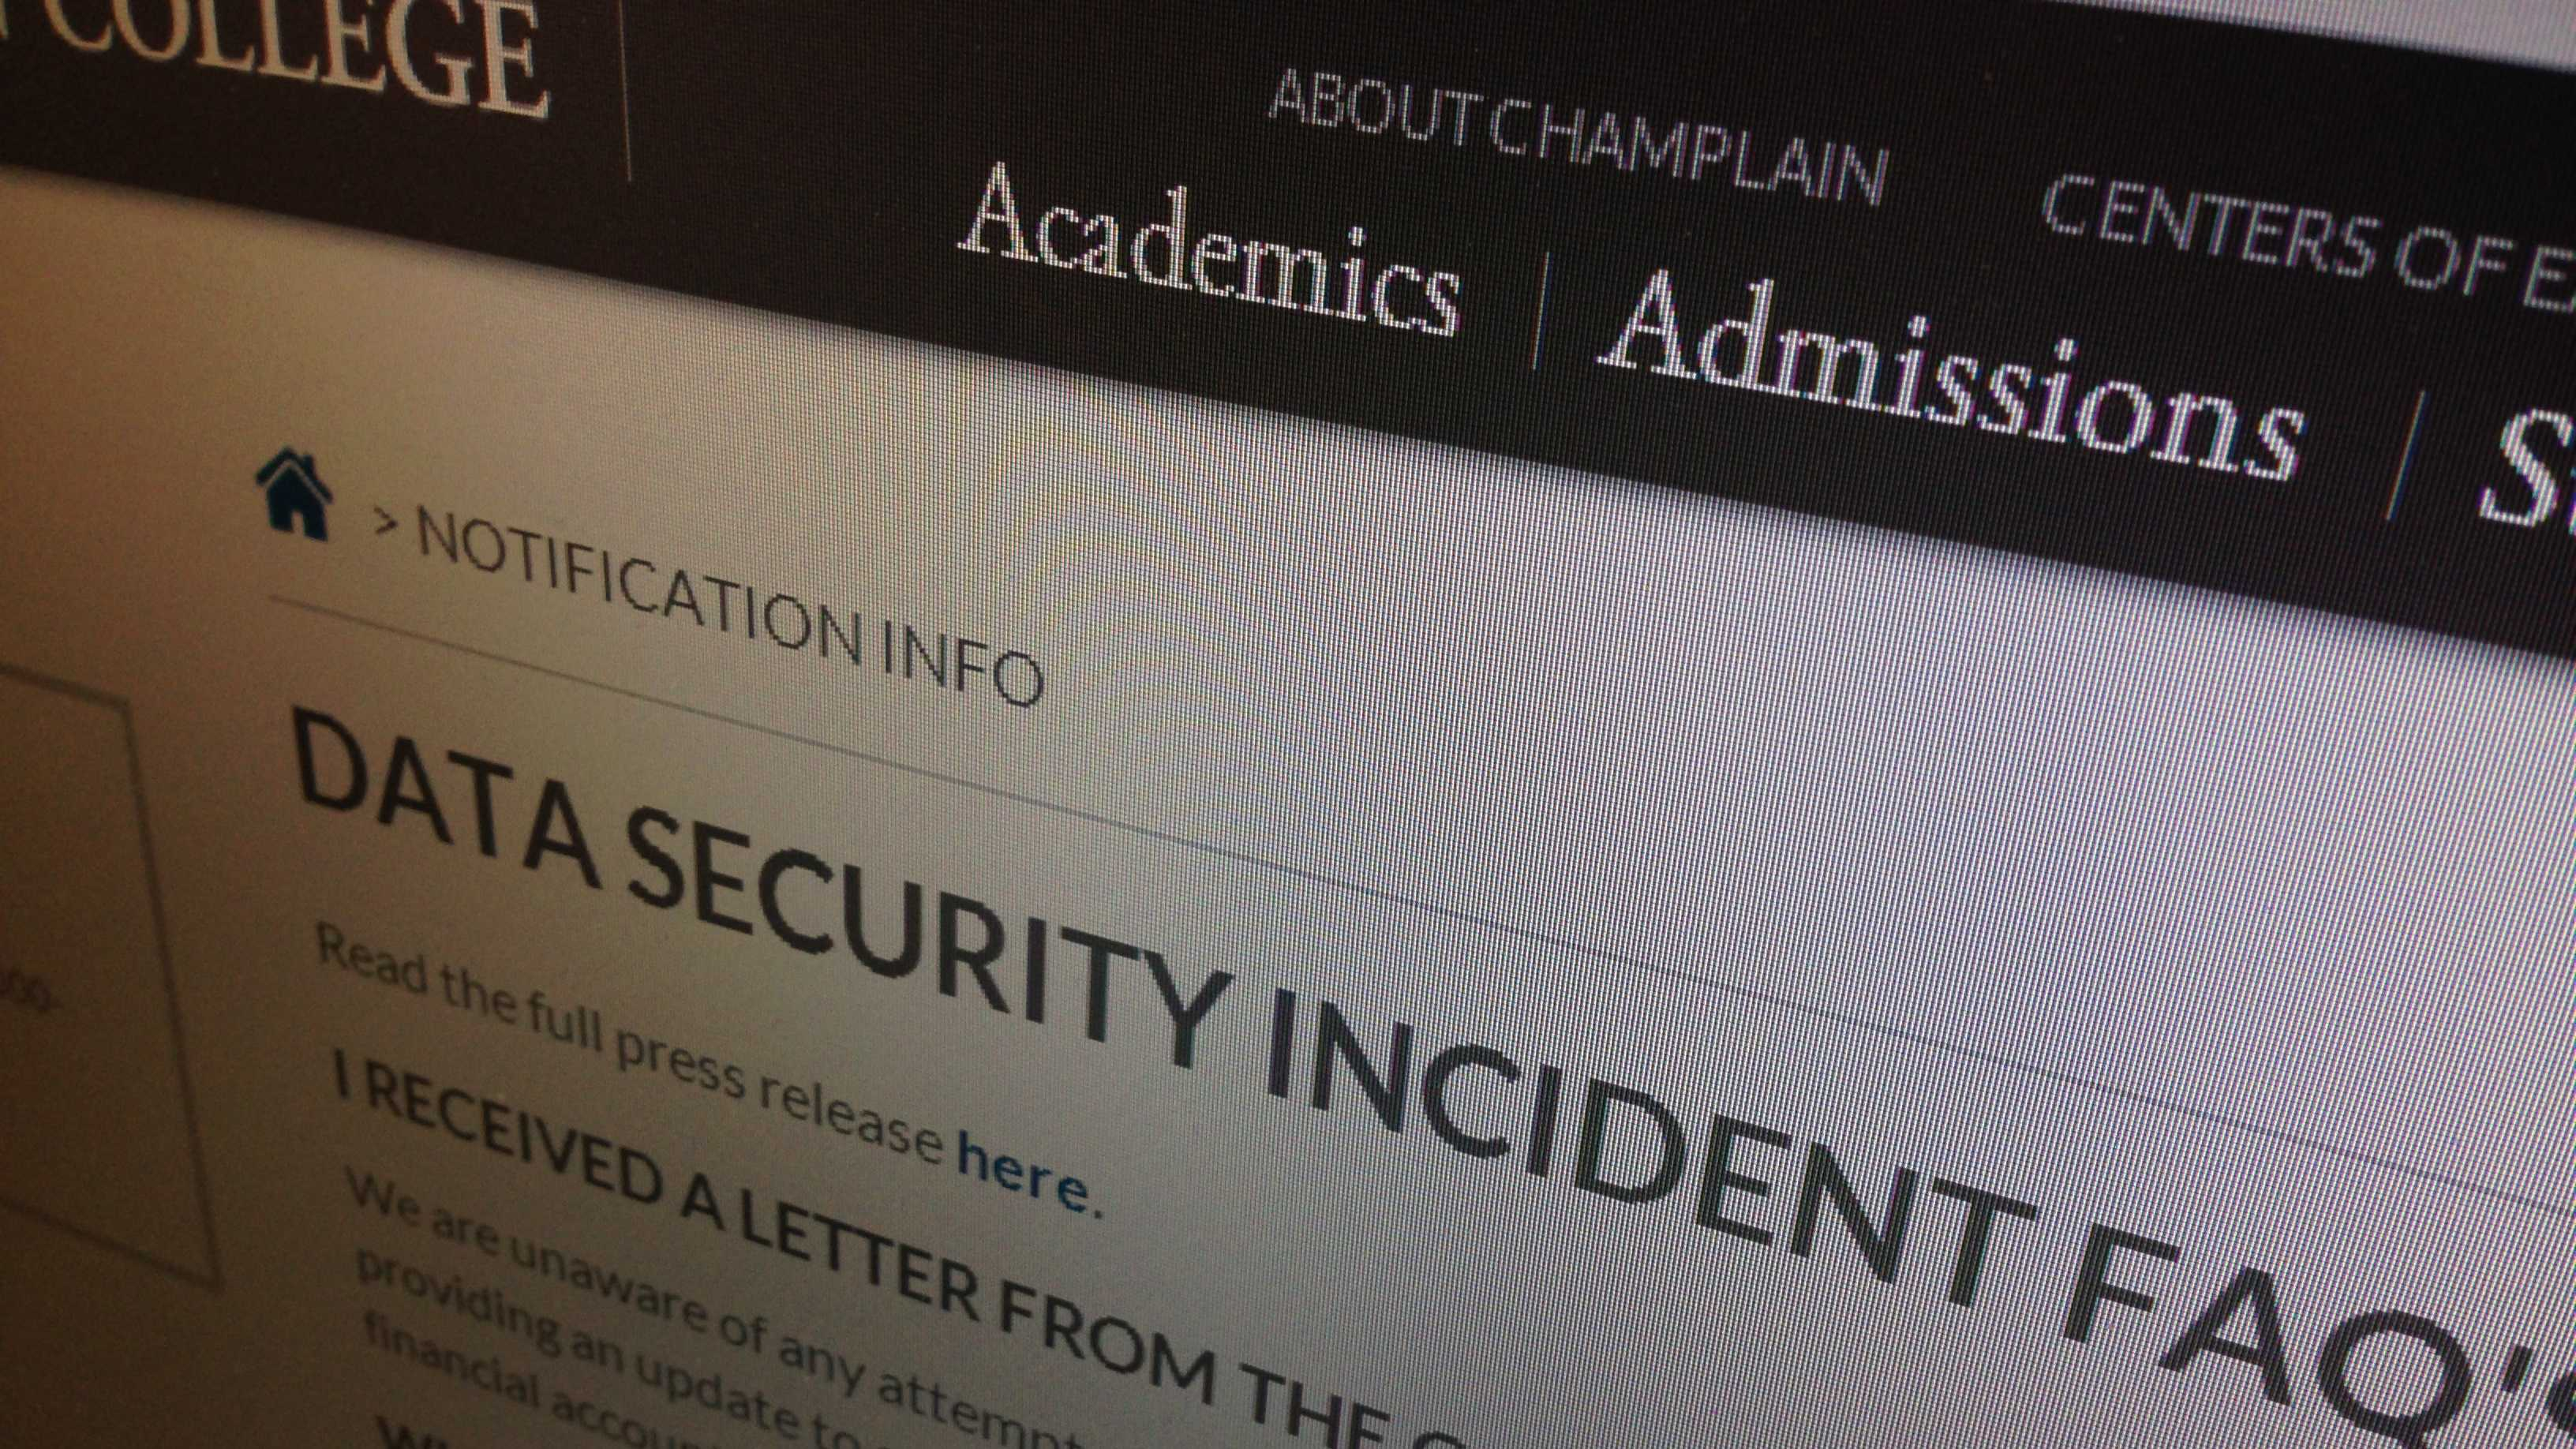 A Vermont college is offering data protection services to more than 14,000 students and their families after a computer drive containing their Social Security numbers and other data was left unsecured in a computer lab.